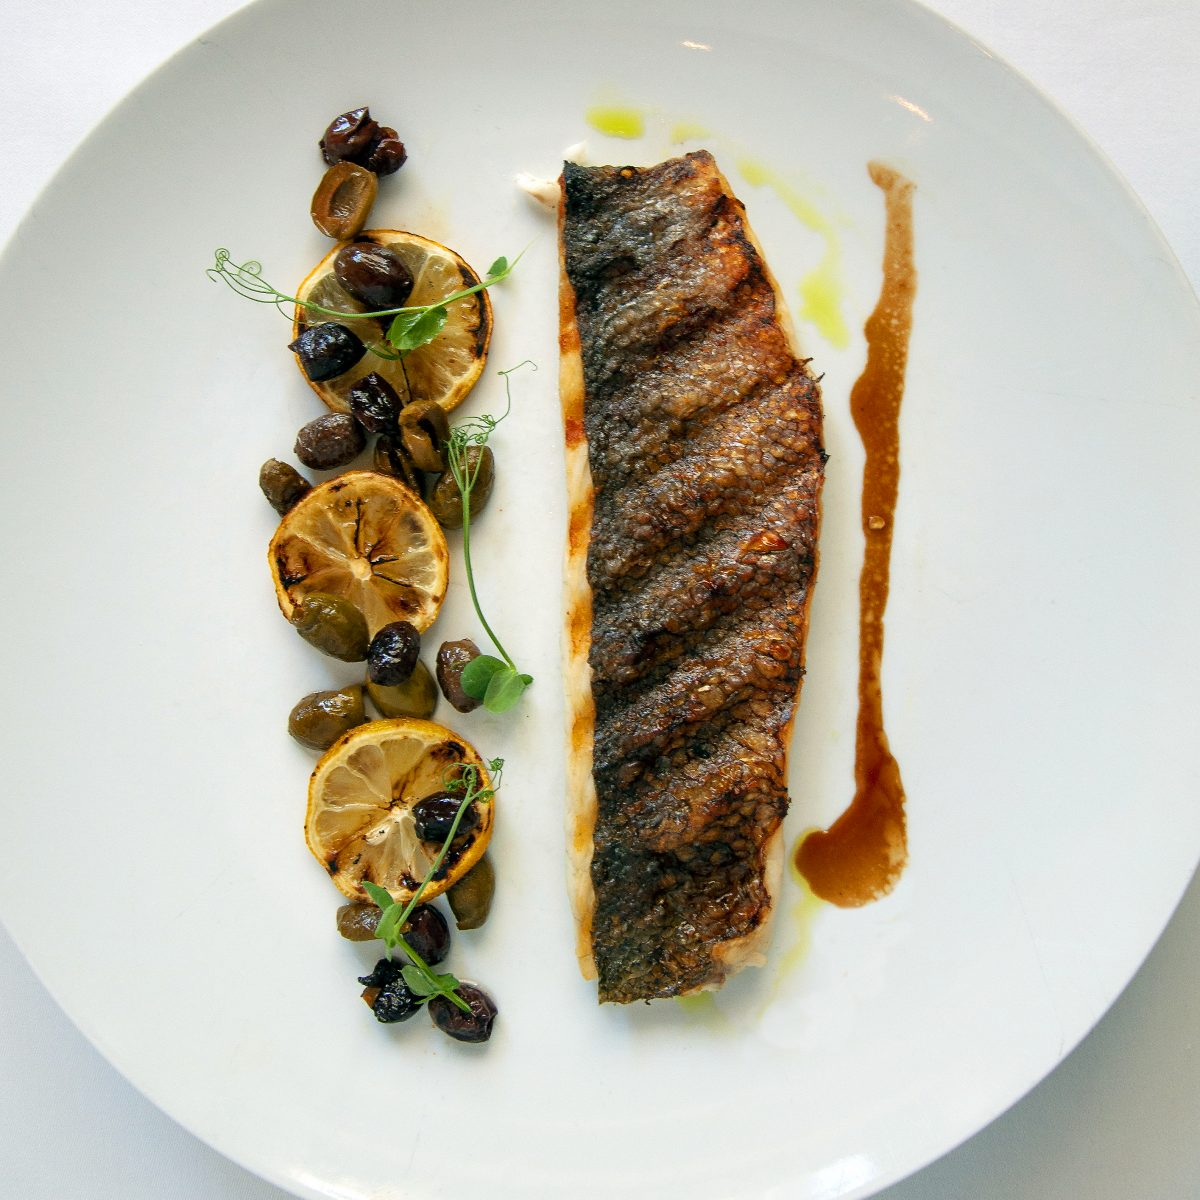 Grilled bronzino filet on a white plate with a line of grilled lemon slices and olives